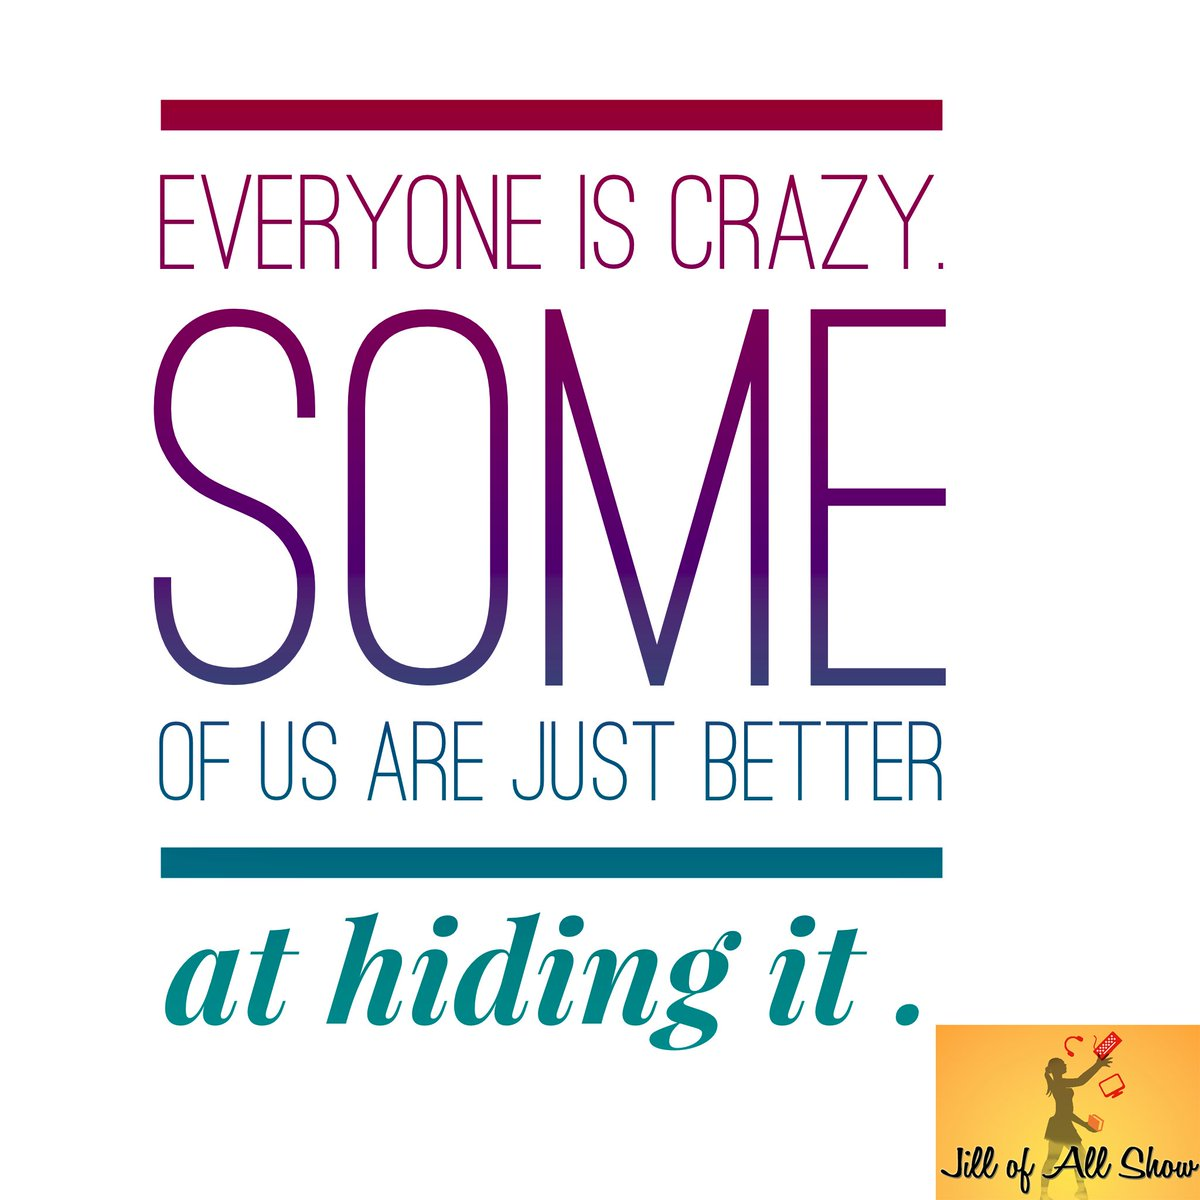 I think I&#39;m not alone though. Some days I can&#39;t hide it at all! Like most #writers. #amwriting #indieauthor <br>http://pic.twitter.com/6jQlVkkCUM